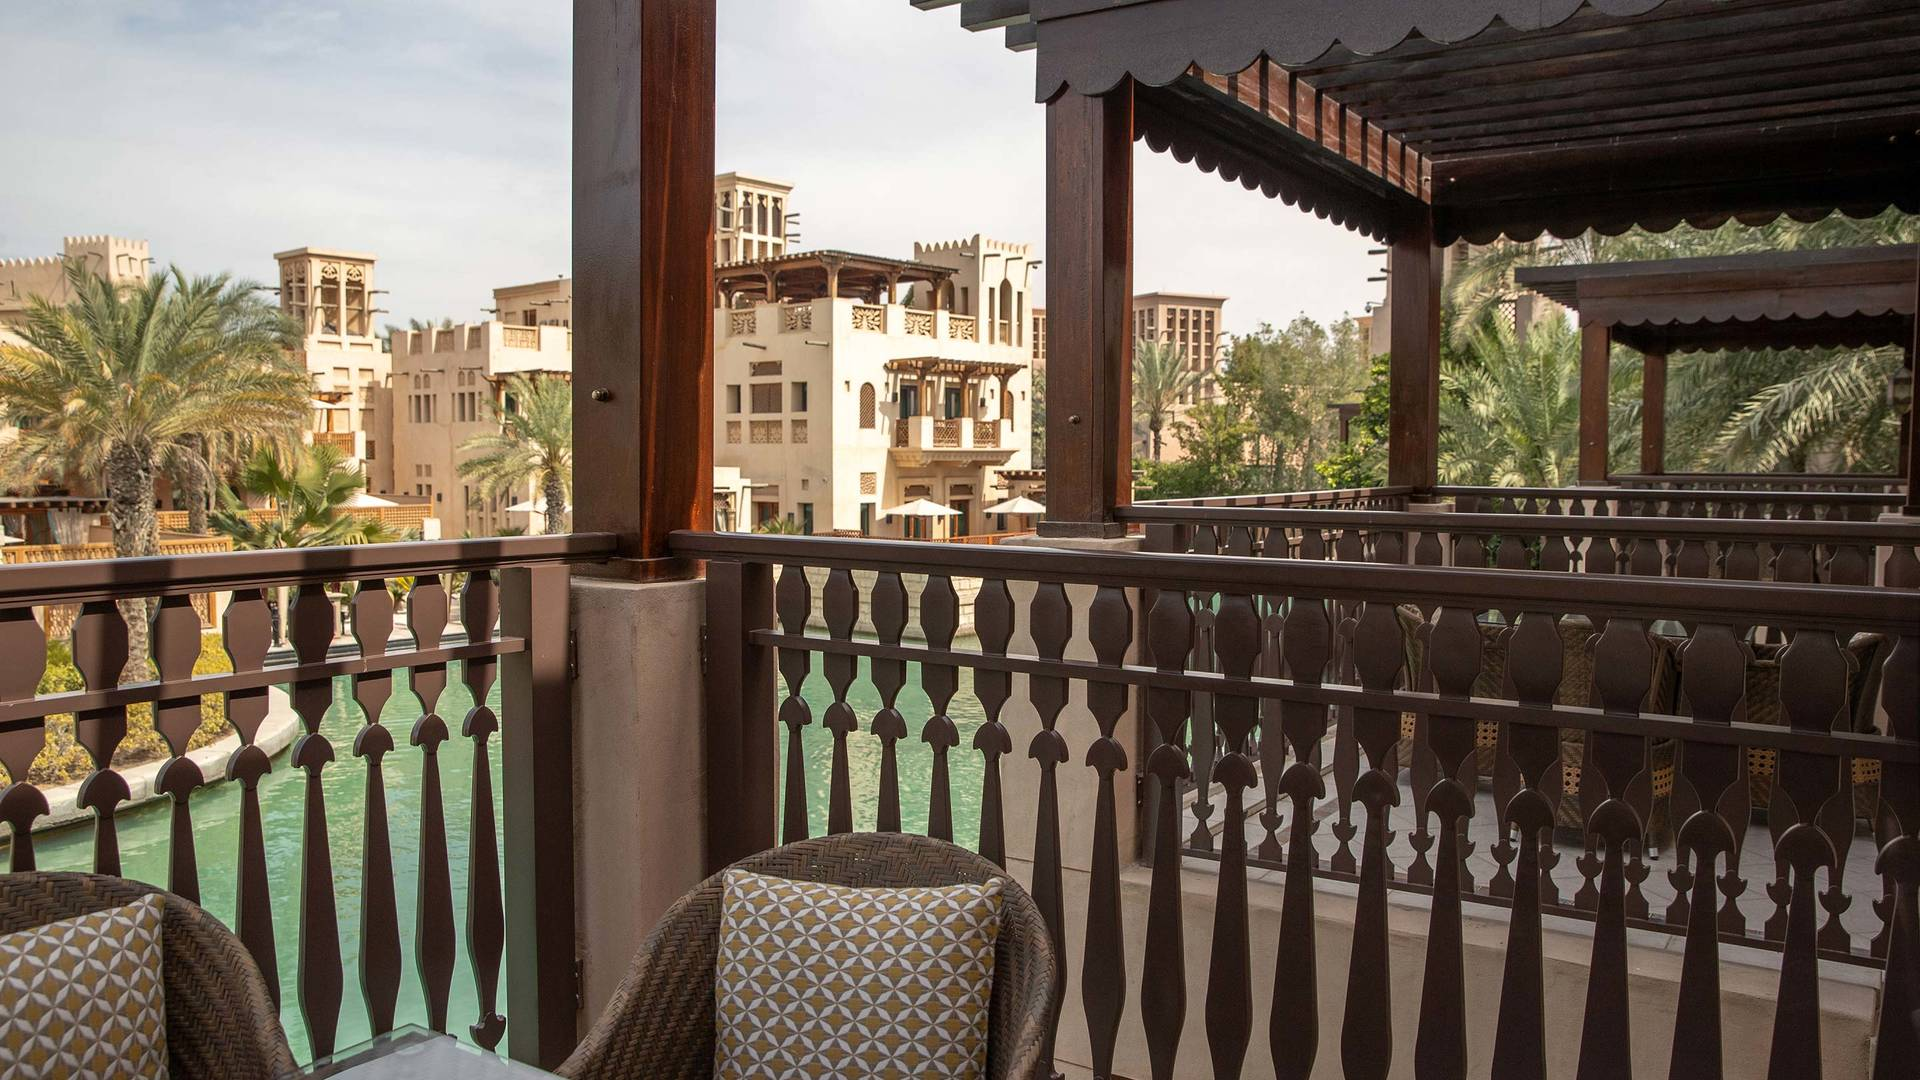 Jumeirah Dar Al Masyaf Arabian summerhouse Arabian Suite room view_16-9